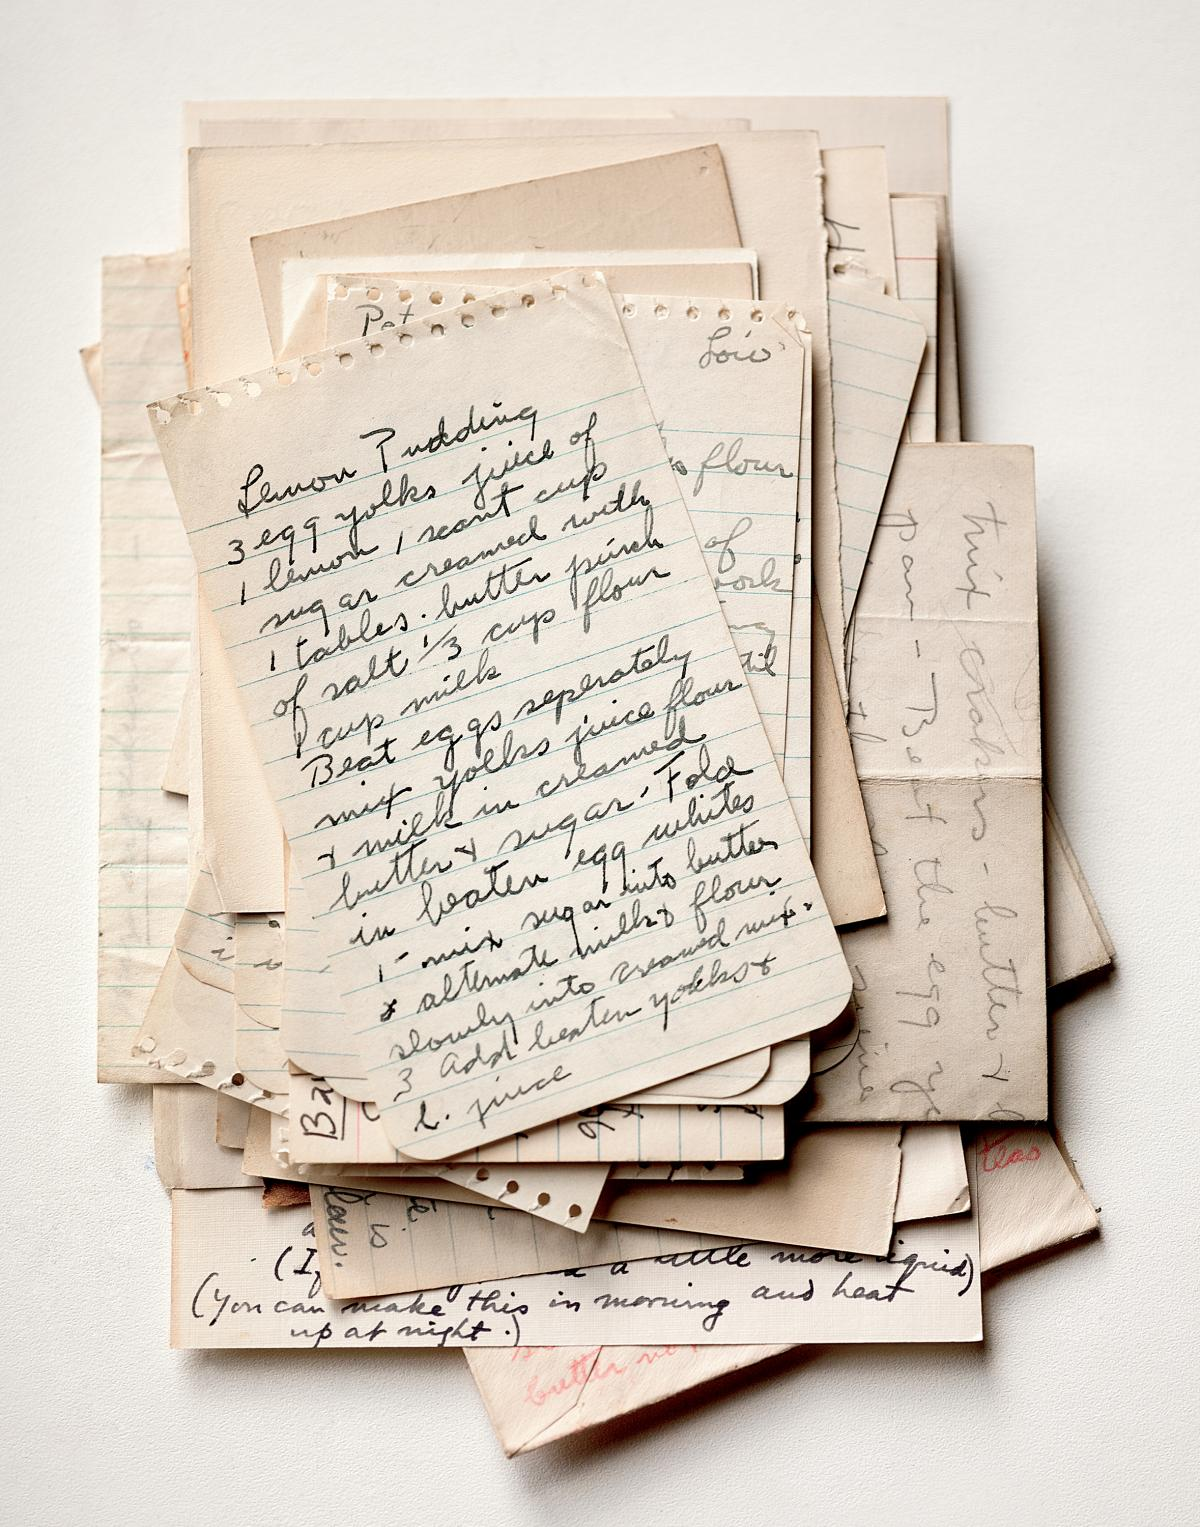 A selection of handwritten recipes discovered in Lee Krasner and Jackson Pollock's pantry.